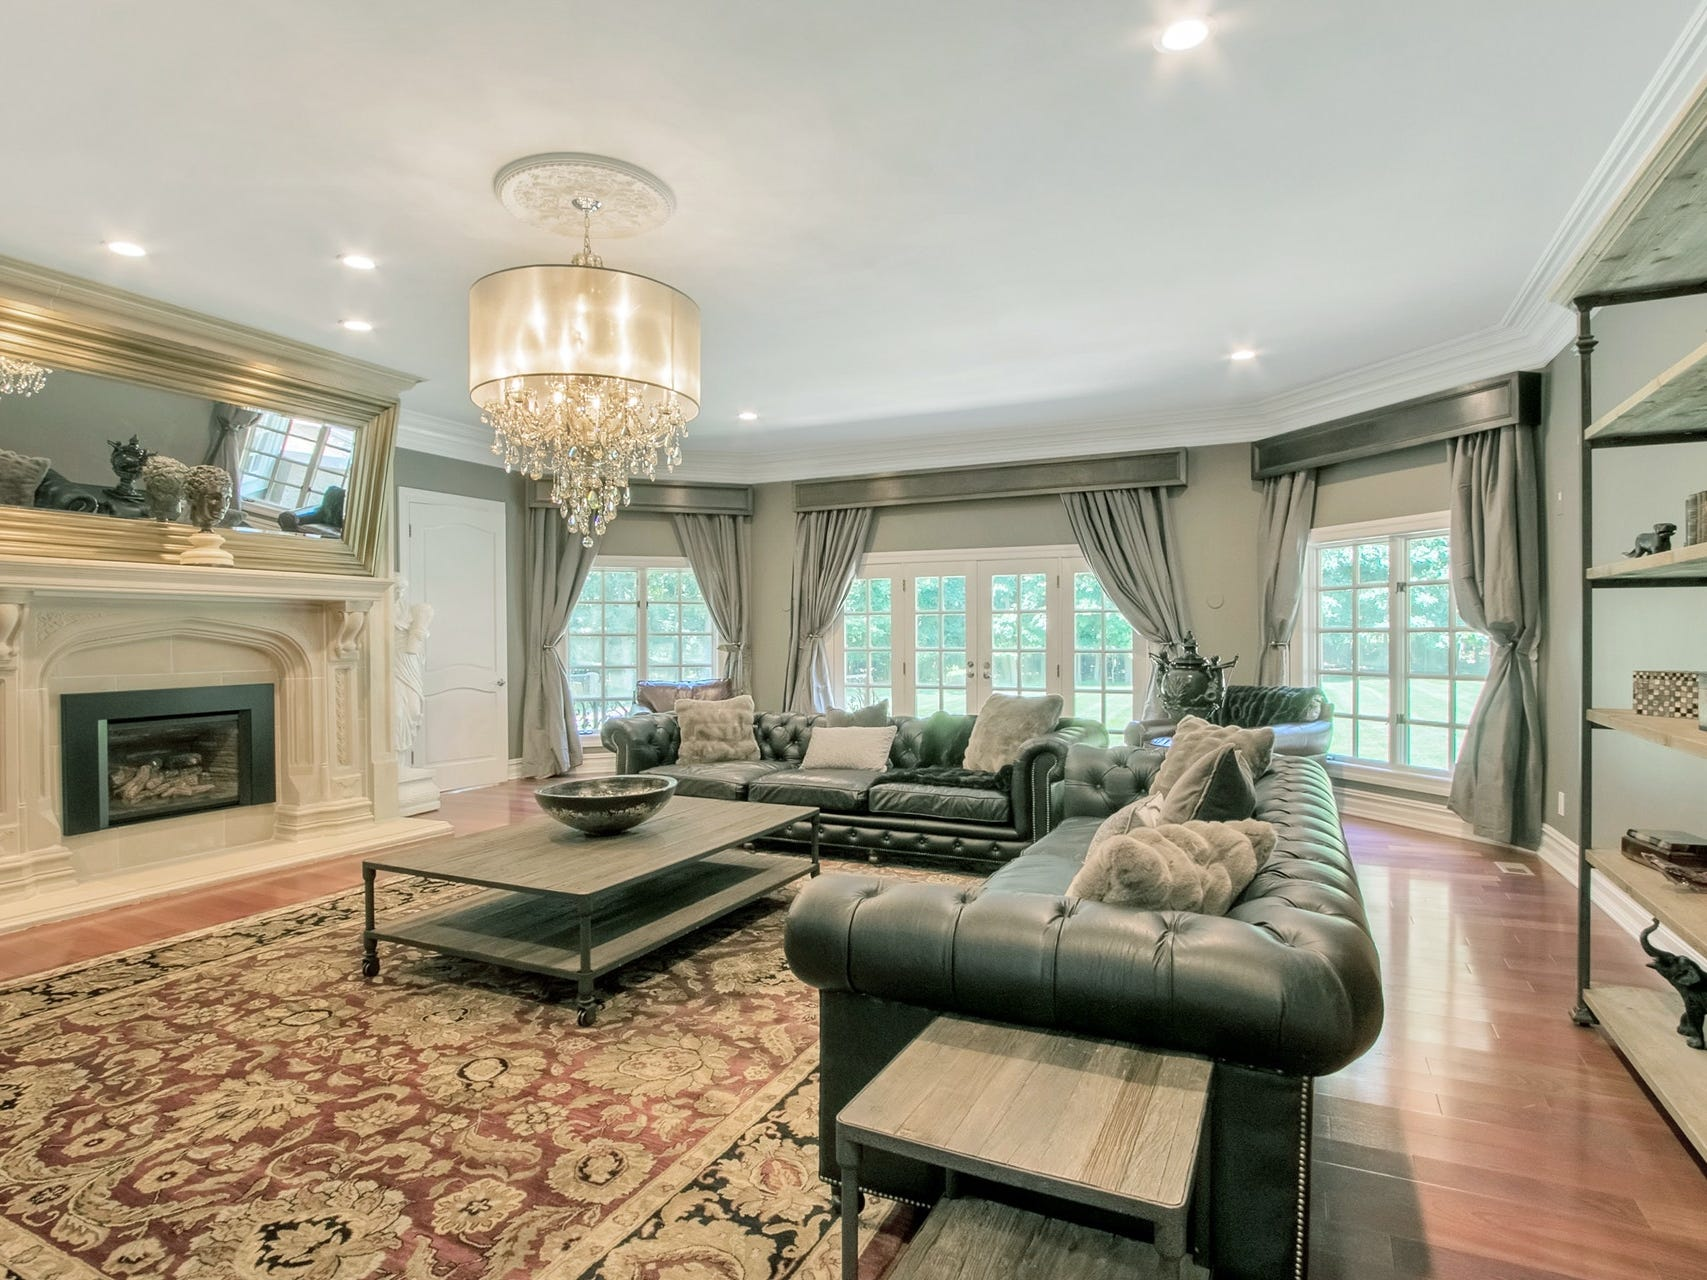 The sitting room, dining room and family room all feature Brazilian cherry wood floors and limestone fireplaces.